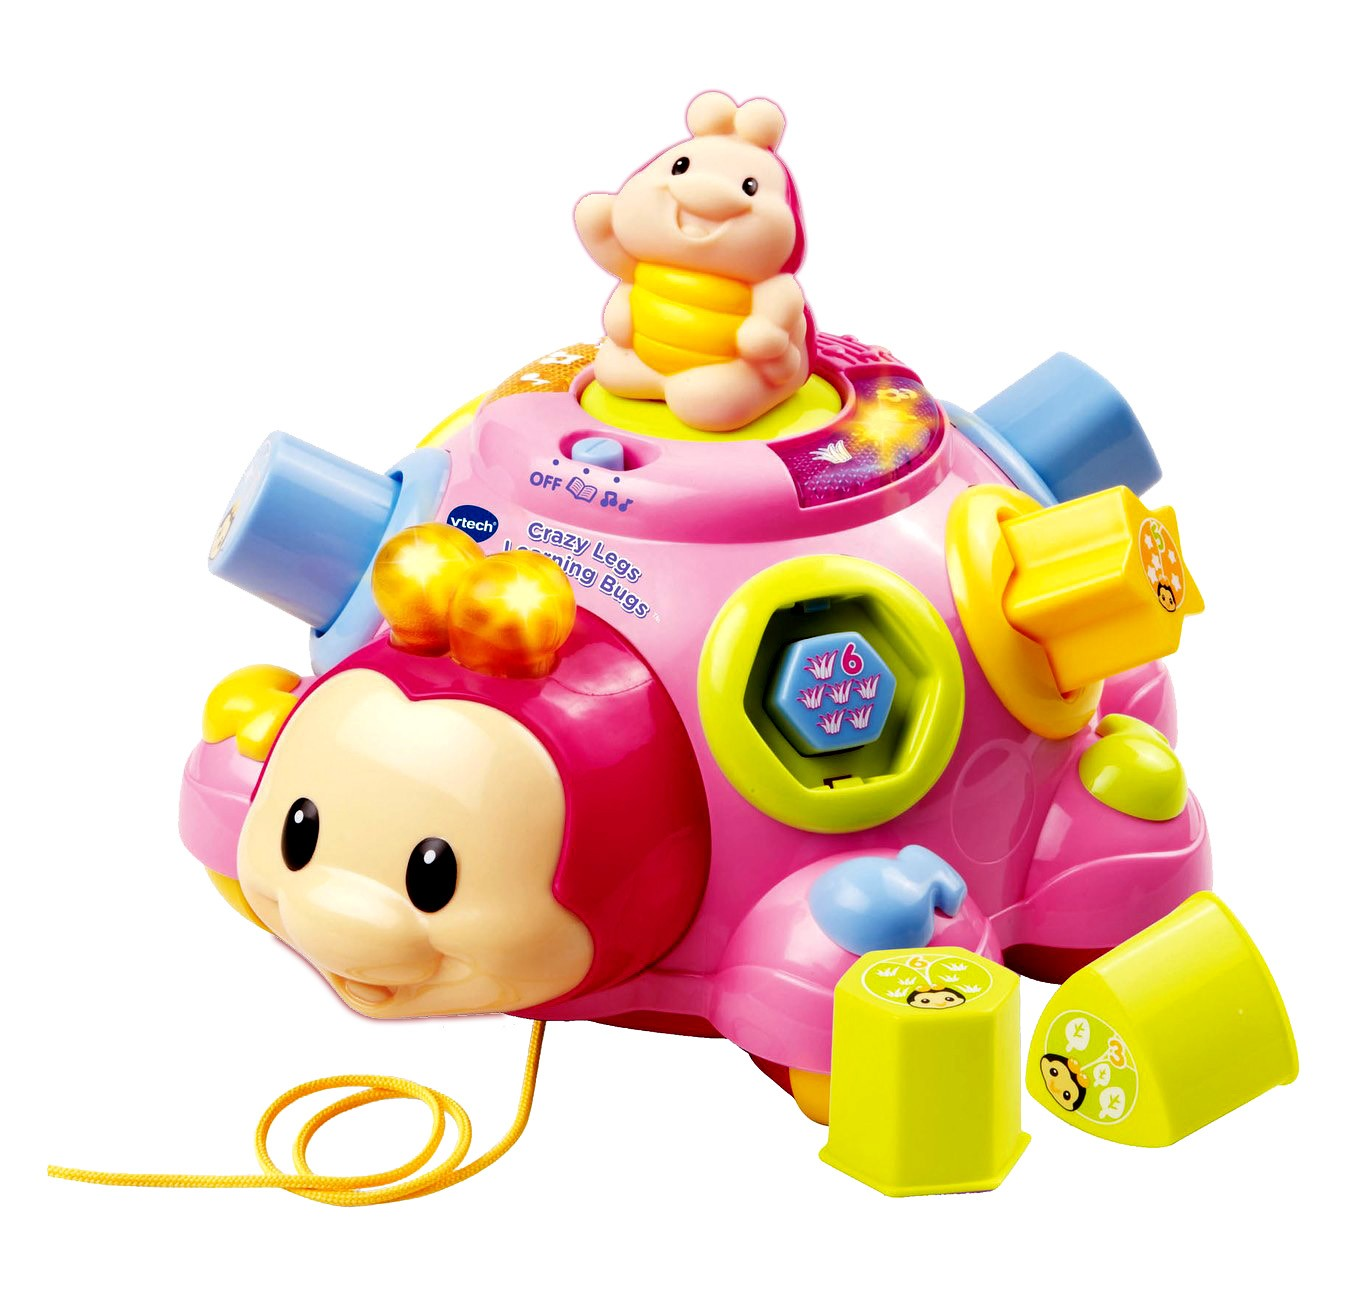 Toys For Legs : Crazy legs learning bugs infant toy vtech